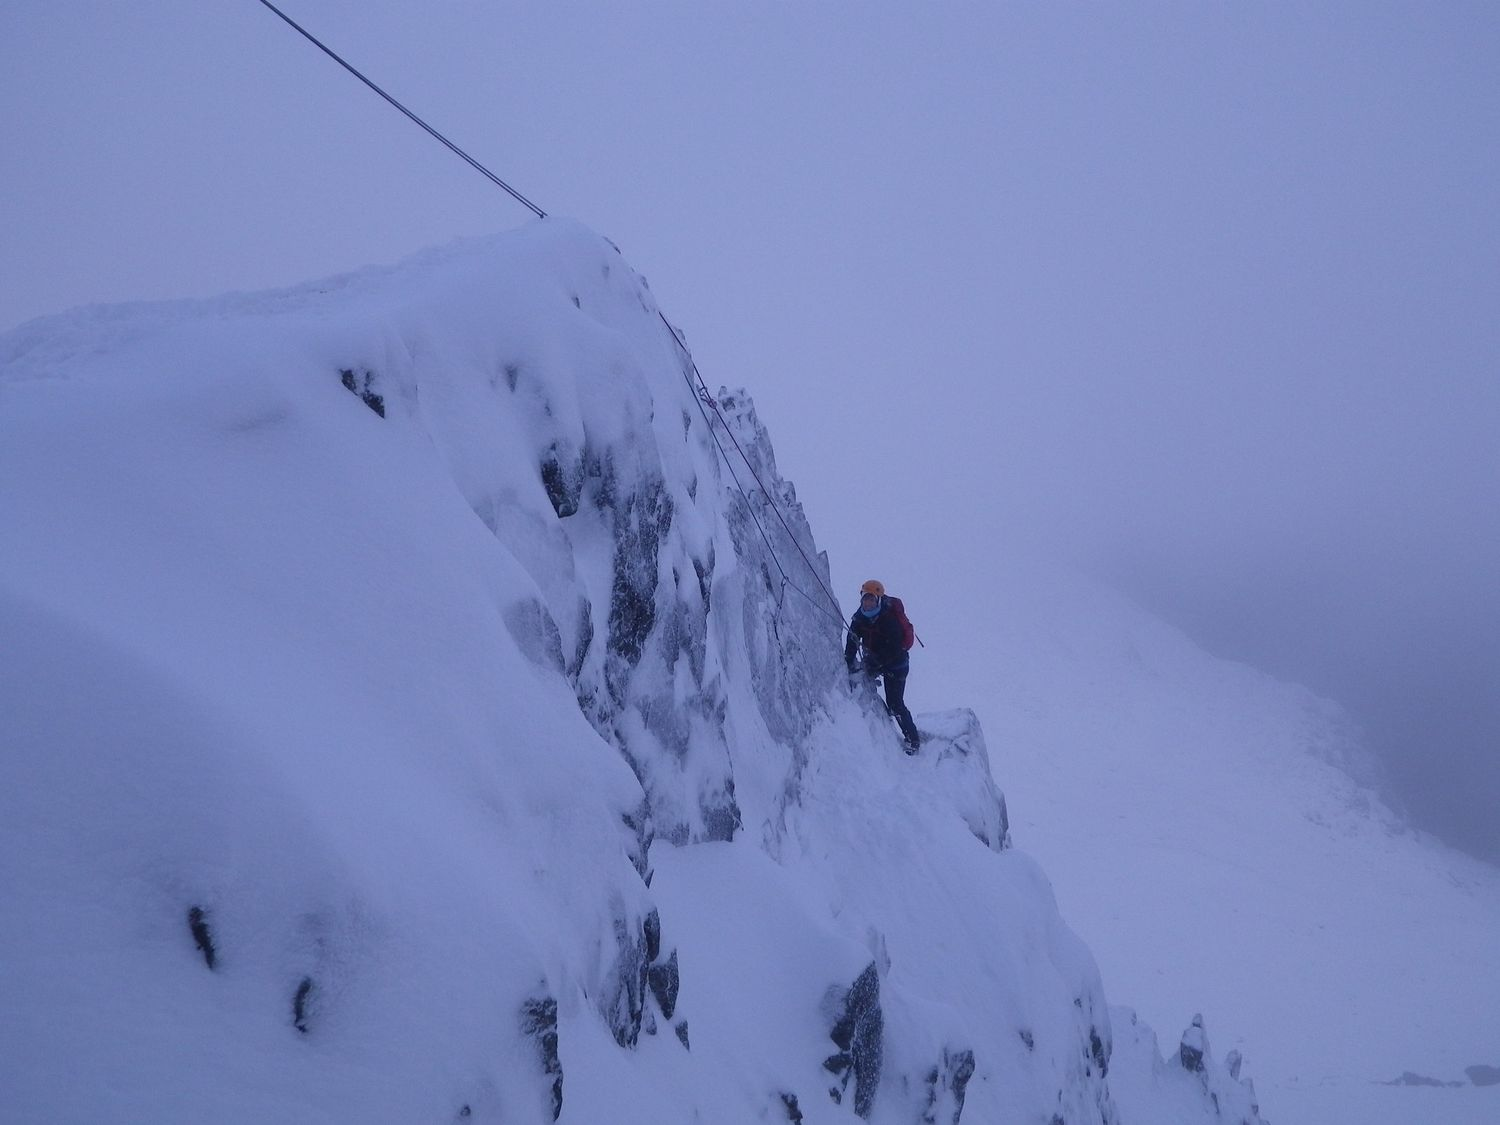 SW 12.01 02 Scotland winter climbing 1500px.jpeg